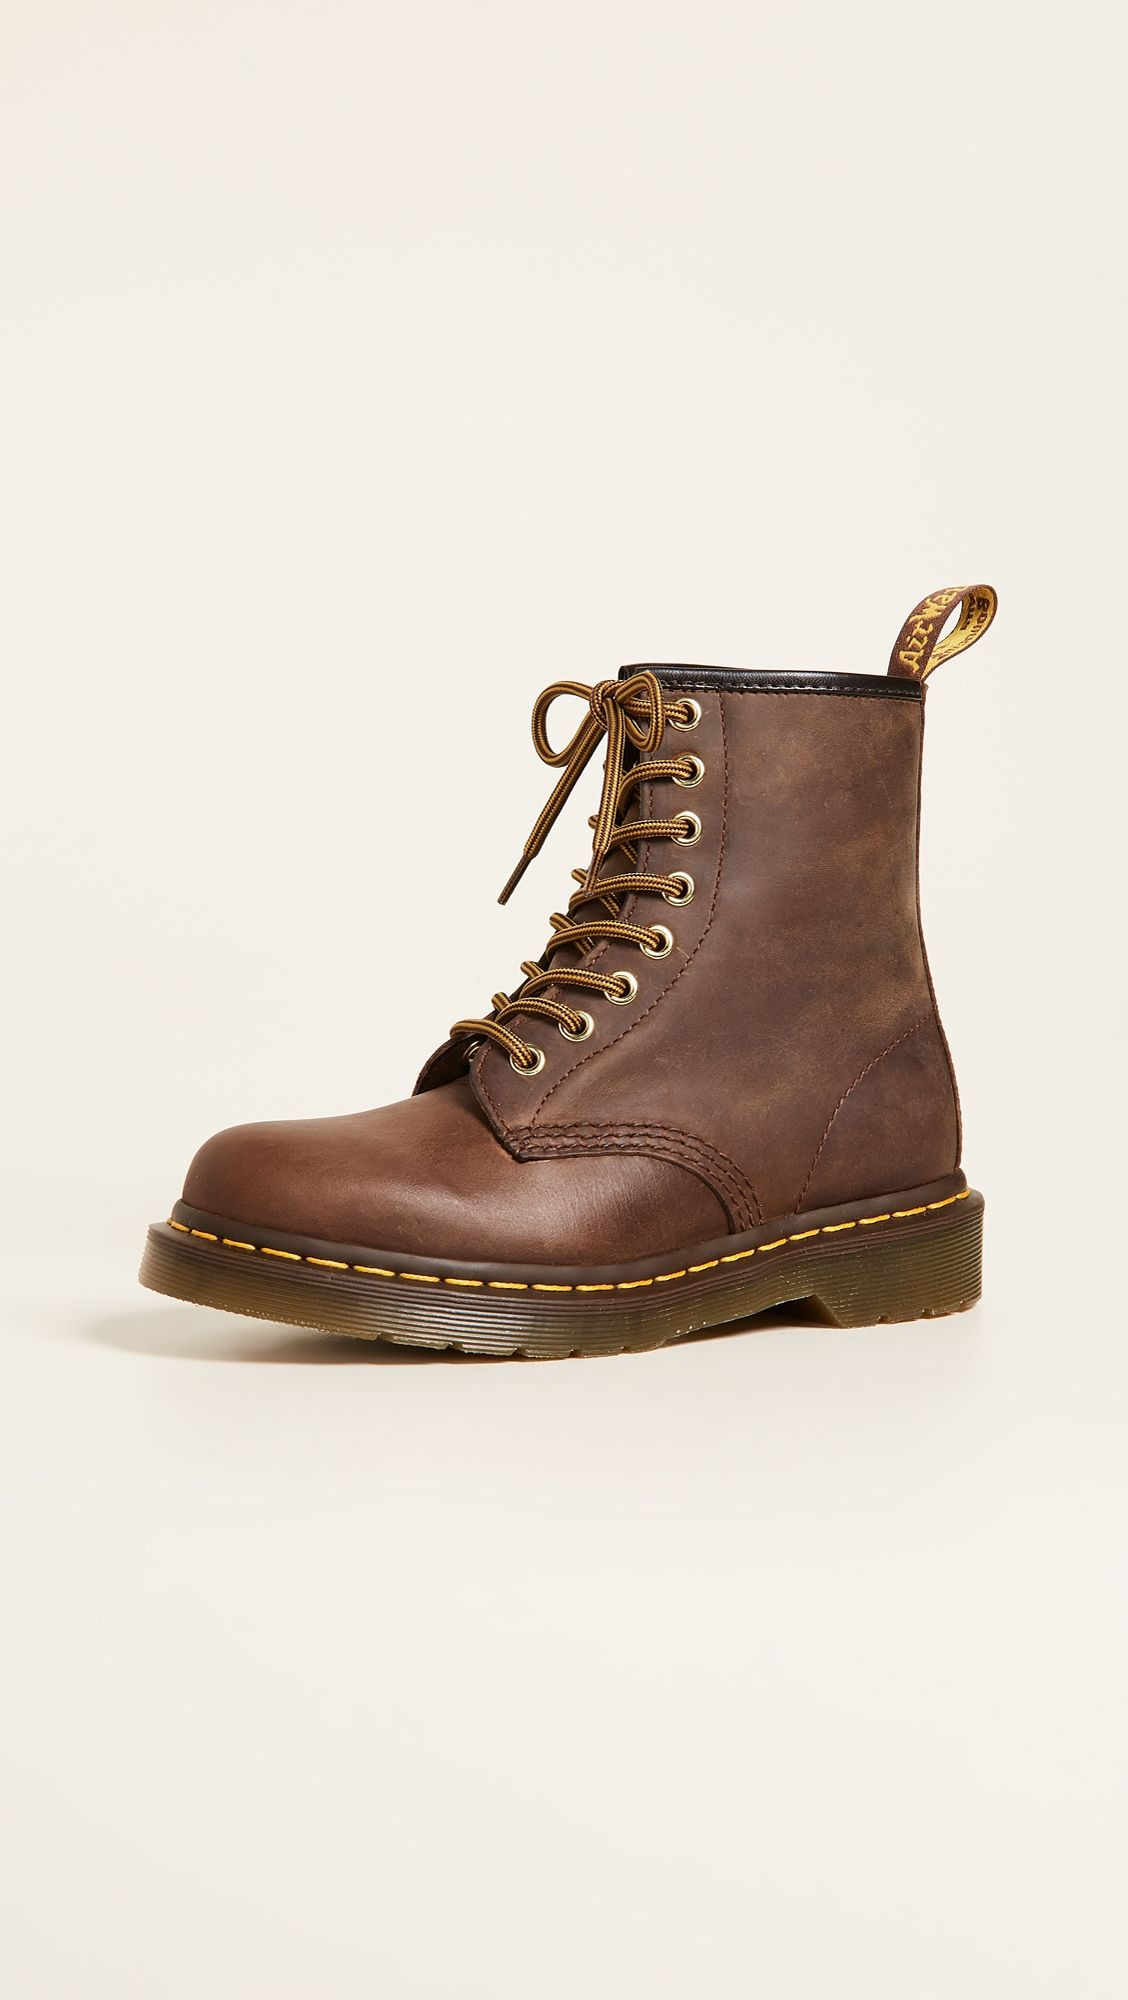 14f4bbeac1 Dr. Martens 1460 8 Eye Boots in 2019 | Products | Doc martens boots ...